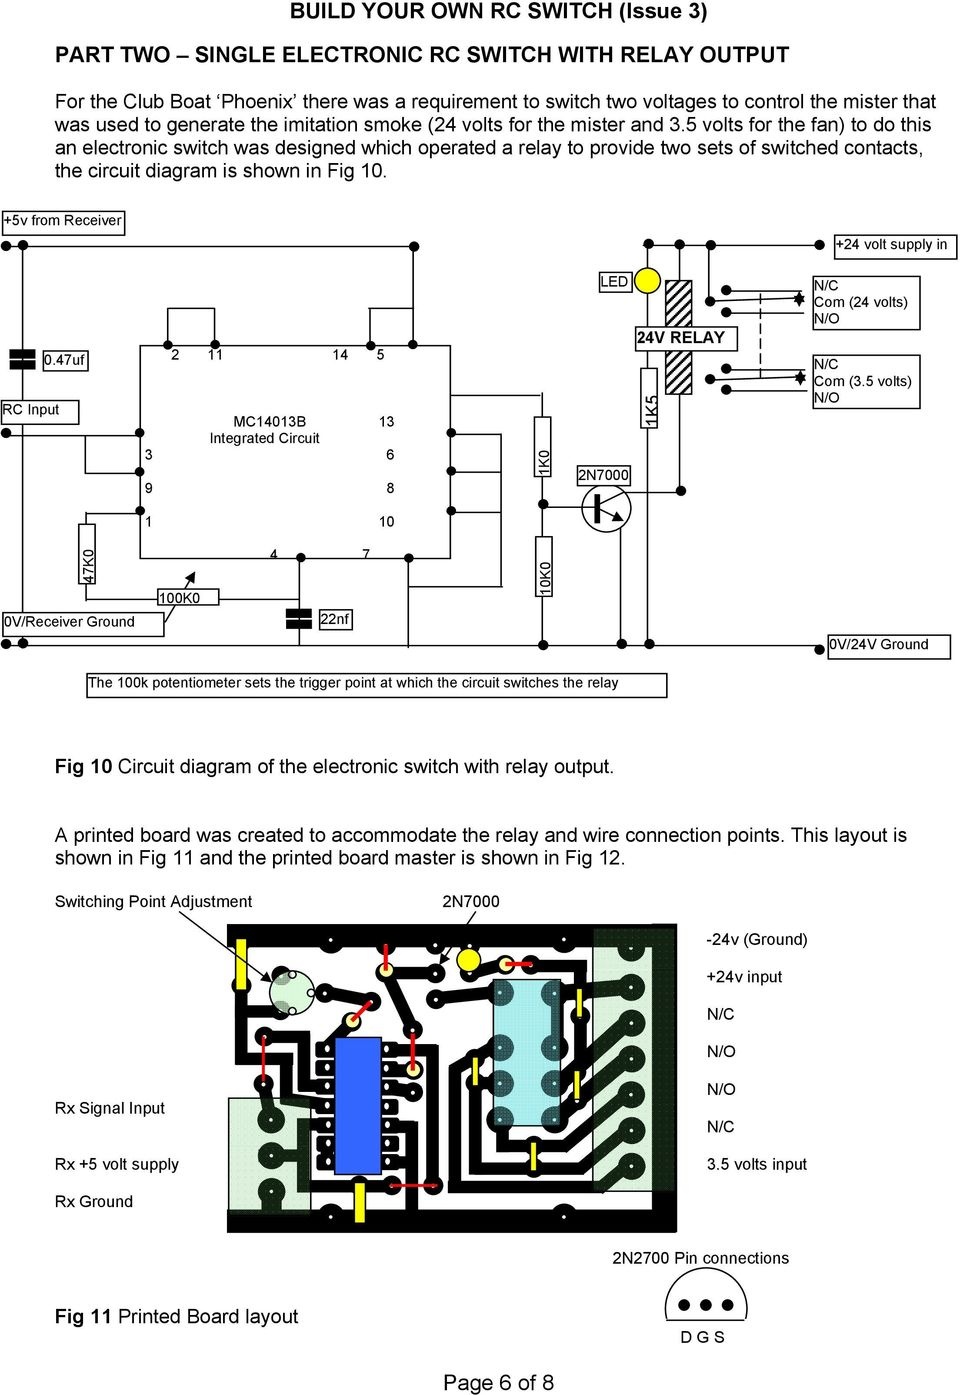 Build Your Own Rc Switch Issue 3 Pdf Quantec Wiring Instructions 5v From Receiver 24 Volt Supply In Input 047uf 2 11 14